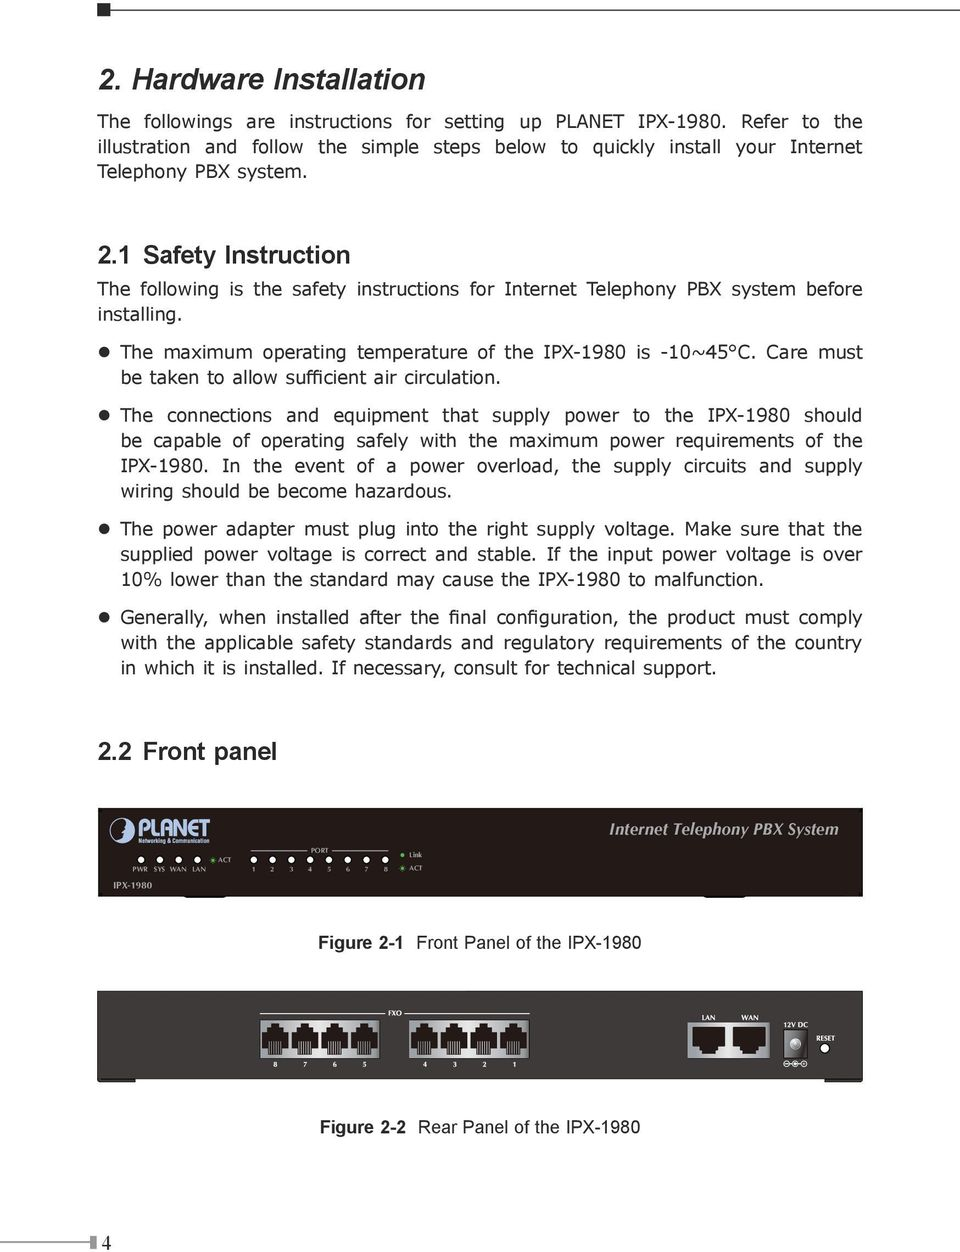 1 Safety Instruction The following is the safety instructions for Internet Telephony PBX system before installing. l The maximum operating temperature of the IPX-1980 is -10~45 C.